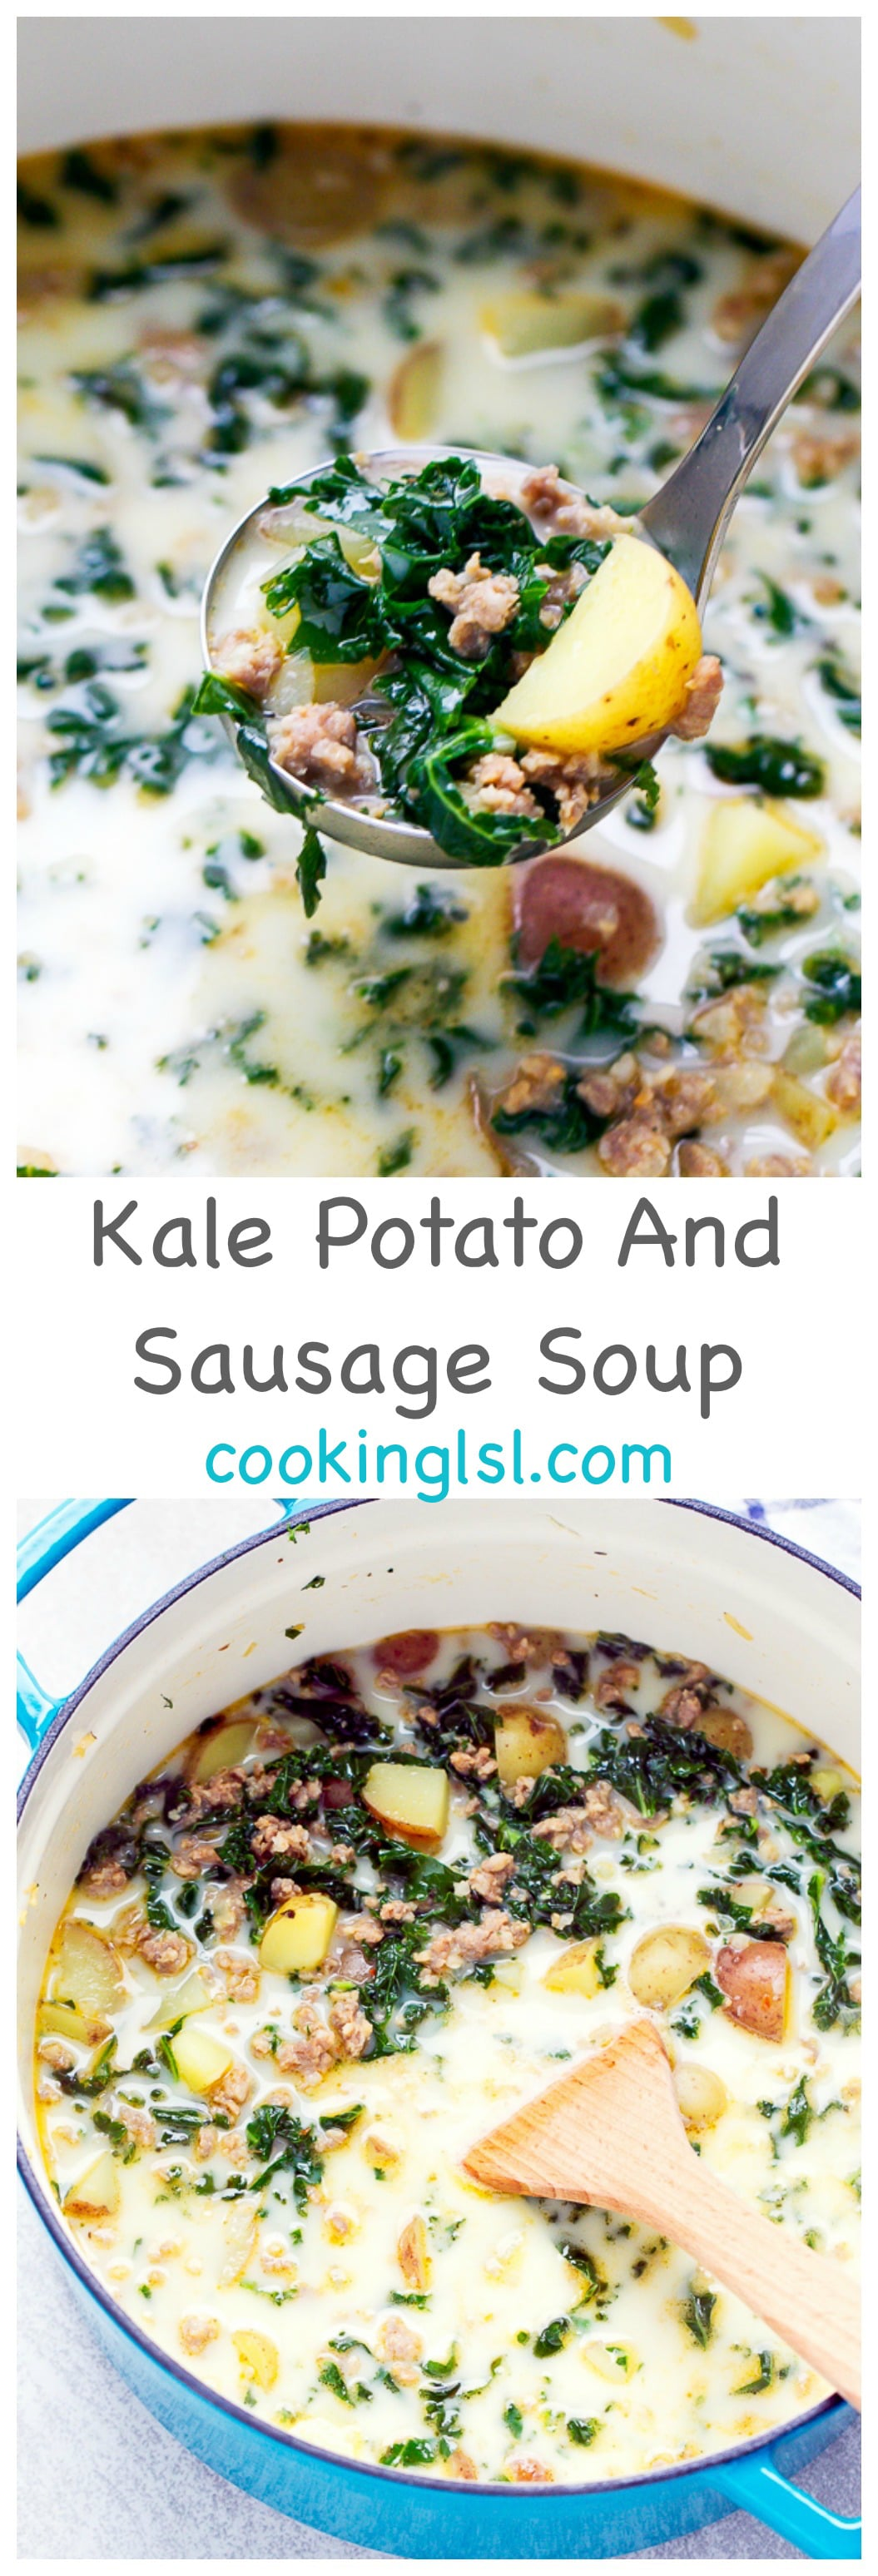 Easy kale potato and sausage soup recipe cooking lsl for Olive garden potato sausage kale soup recipe